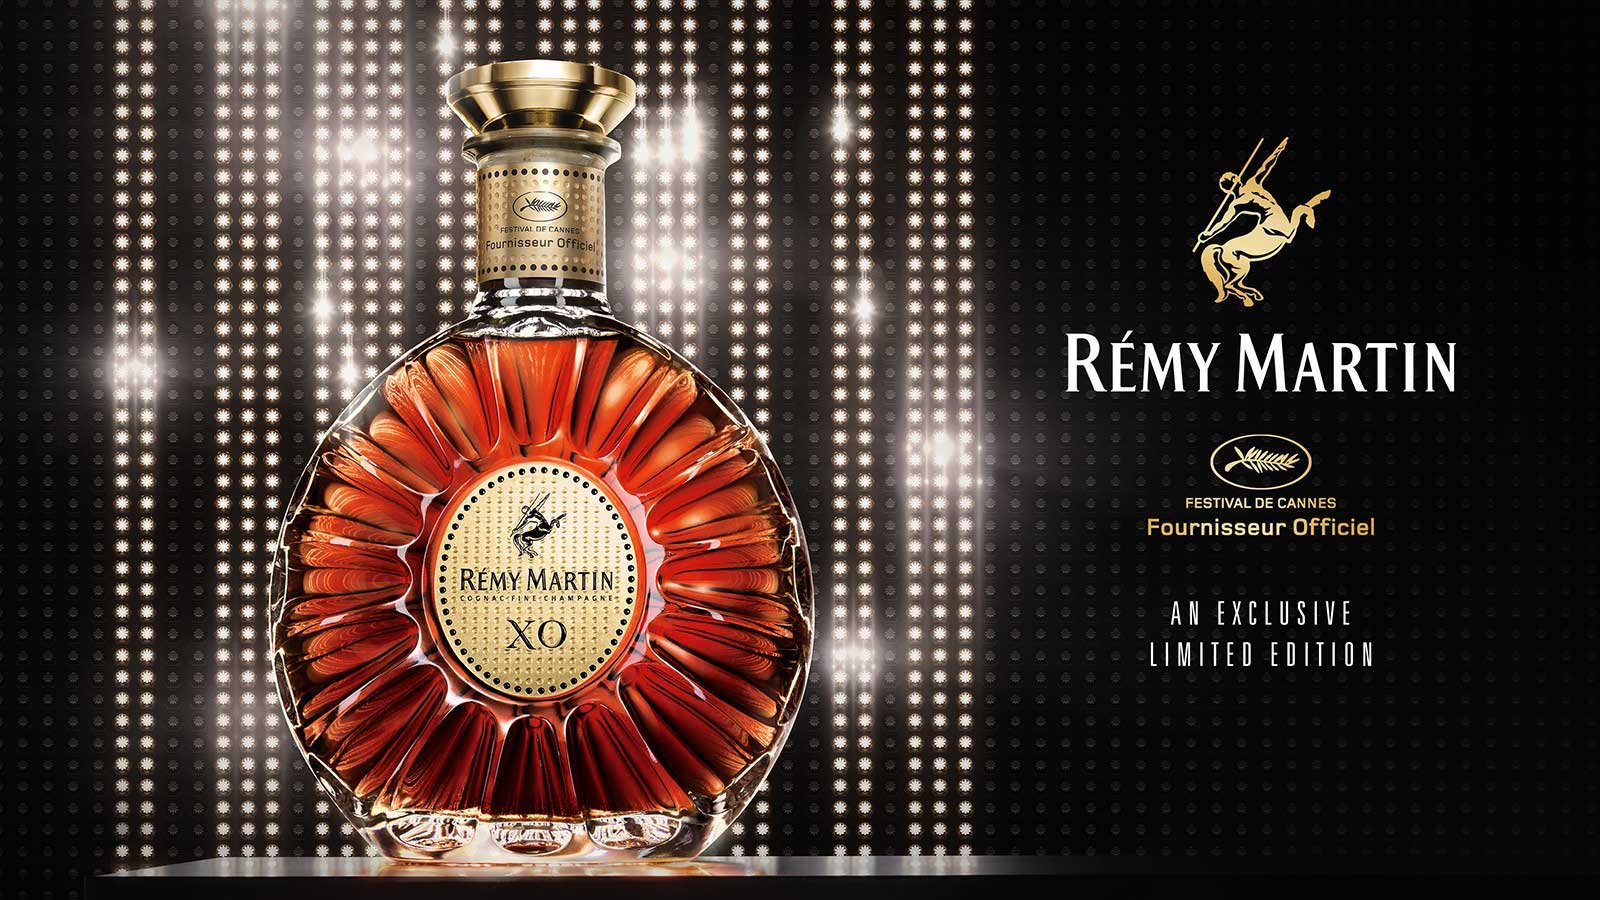 Remy Martin Cannes Film Festival XO Limited Edition 2018